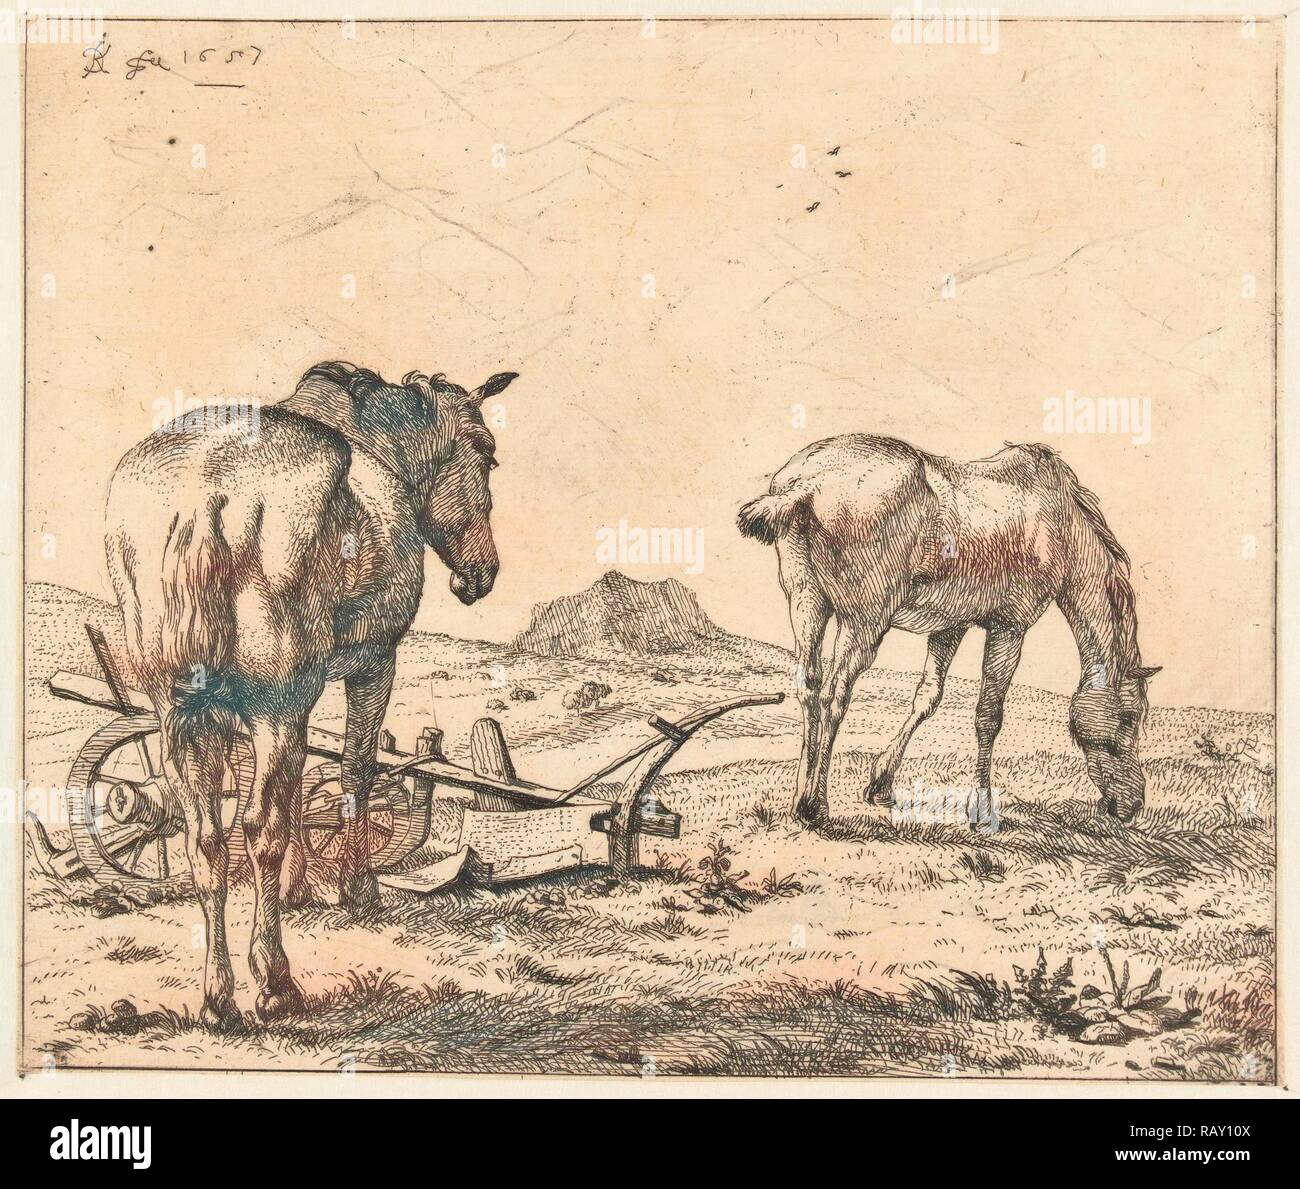 Two Horses And A Plow Karel Dujardin 1657 Reimagined By Gibon Classic Art With A Modern Twist Reimagined Stock Photo Alamy